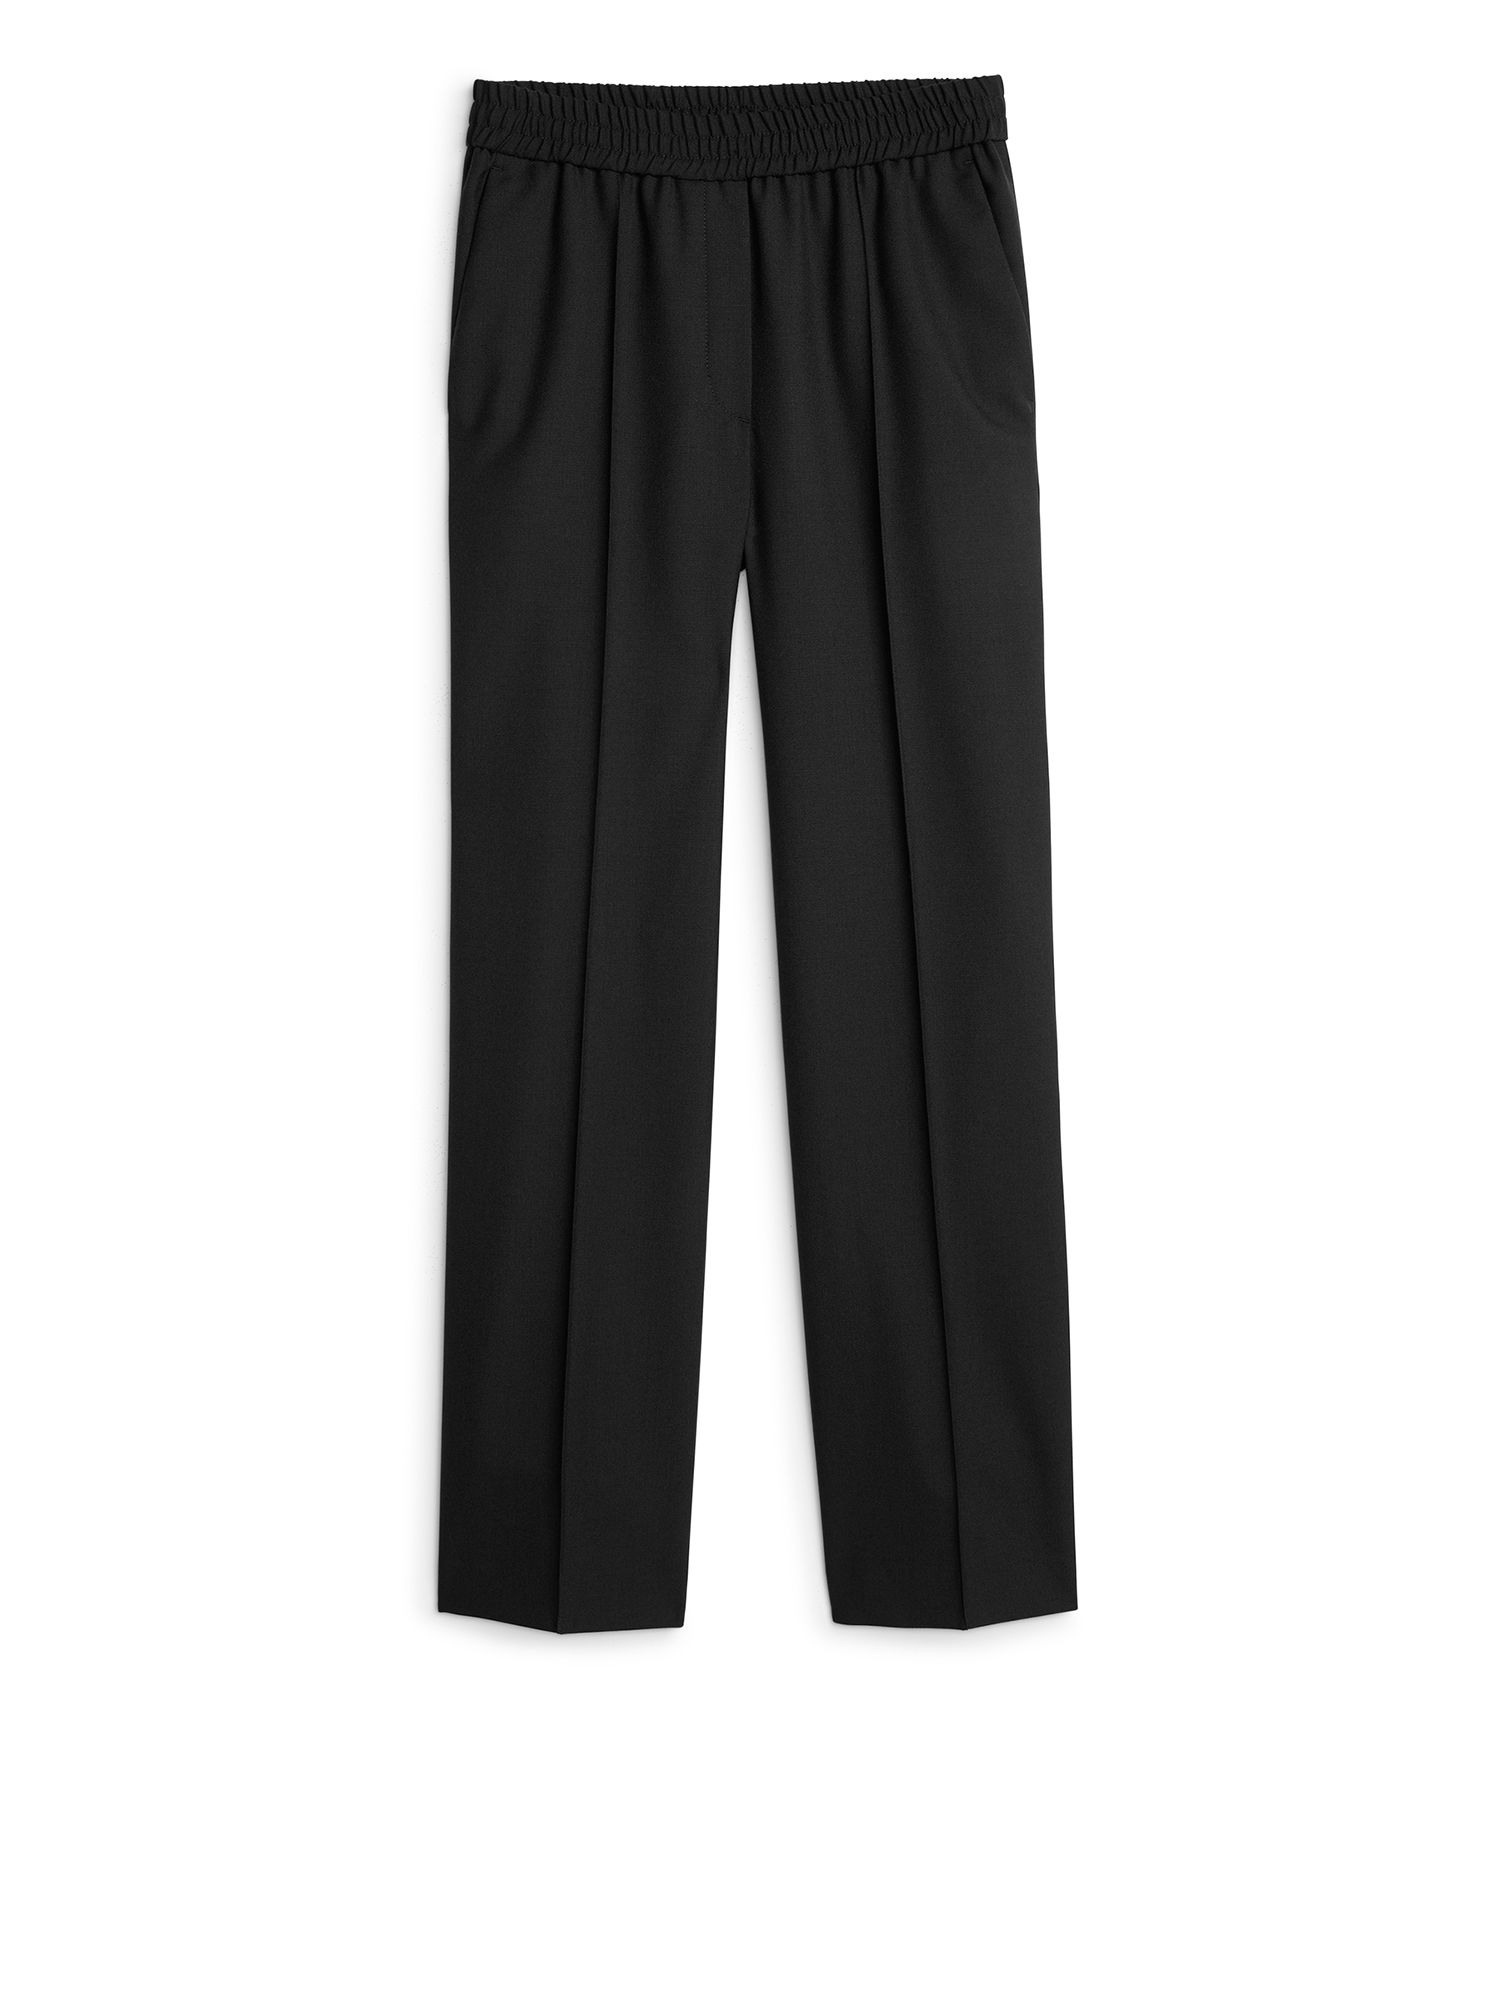 Fabric Swatch image of Arket elastic waist wool trousers in black